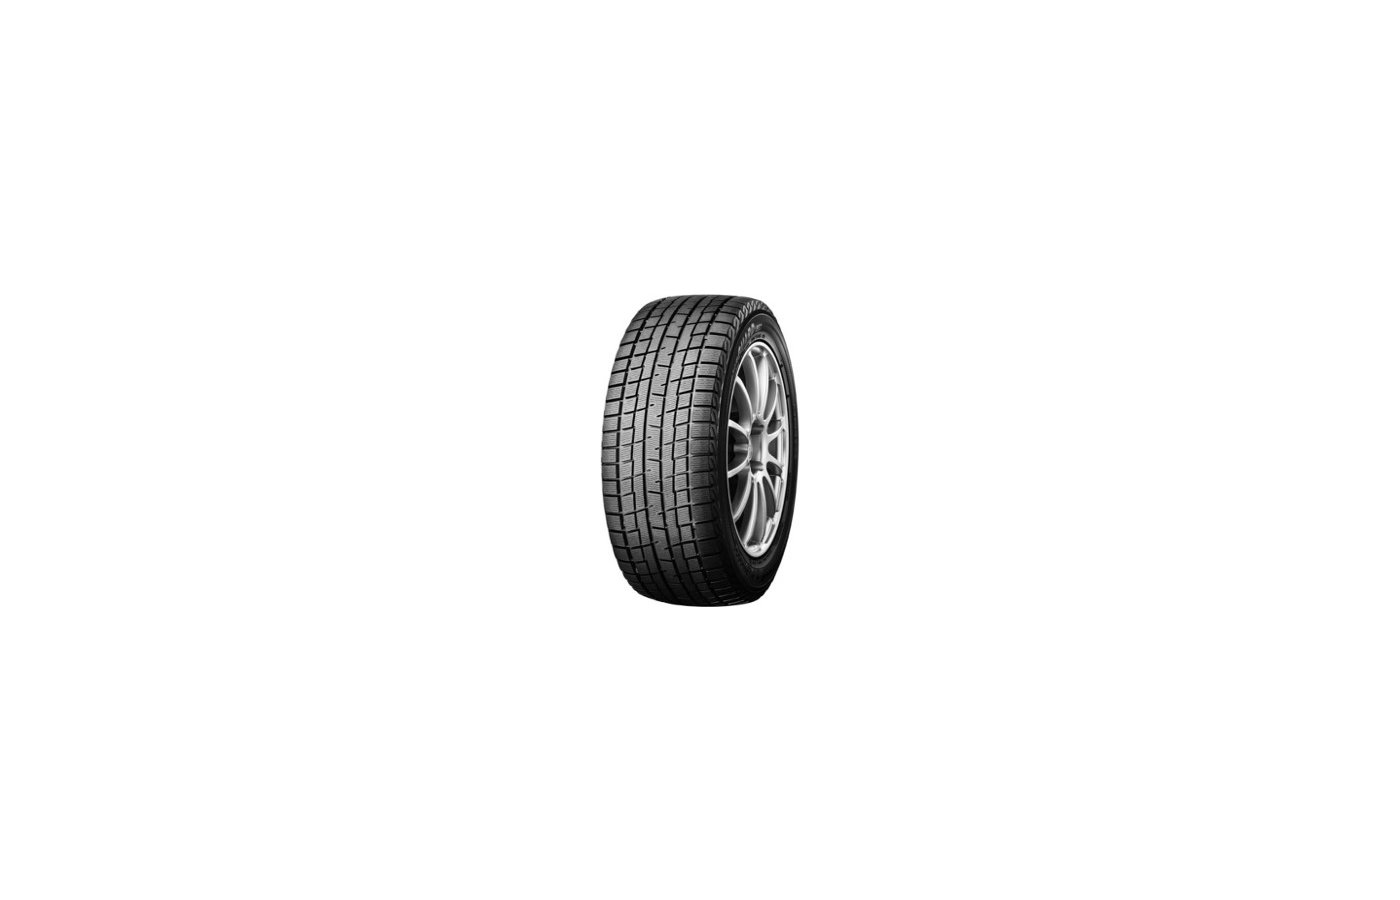 Шина Yokohama Ice Guard IG50 Plus 185/65 R15 TL 88Q